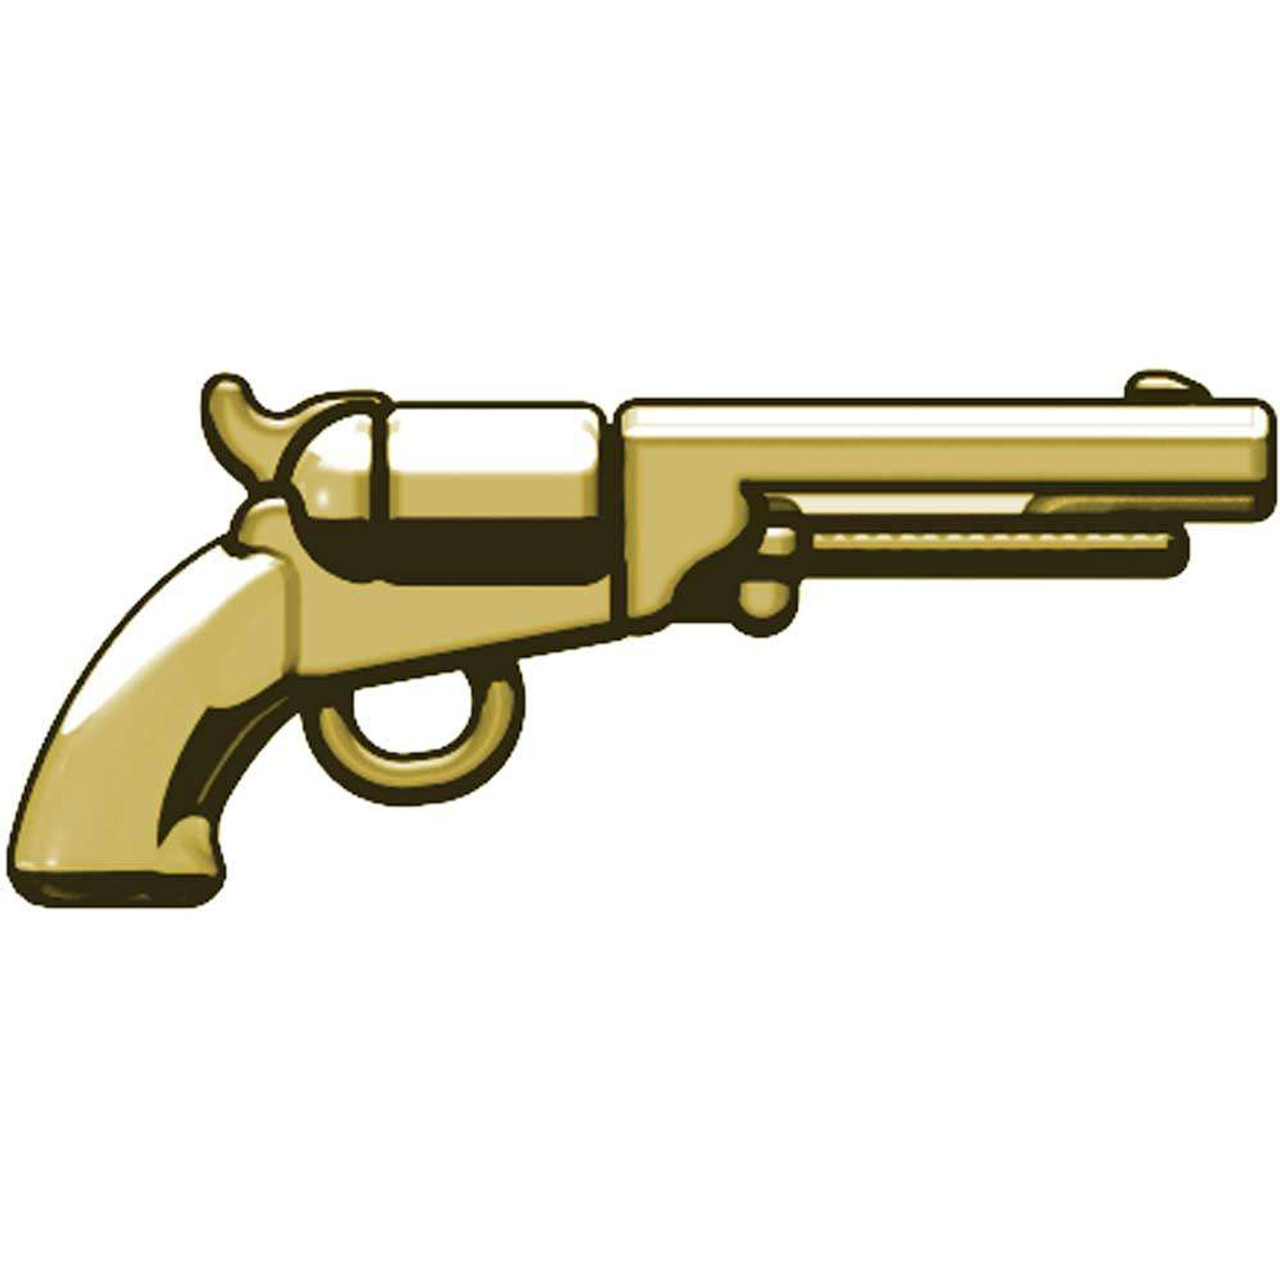 BrickArms Weapons M1851 Navy Revolver 2.5-Inch [Tan]